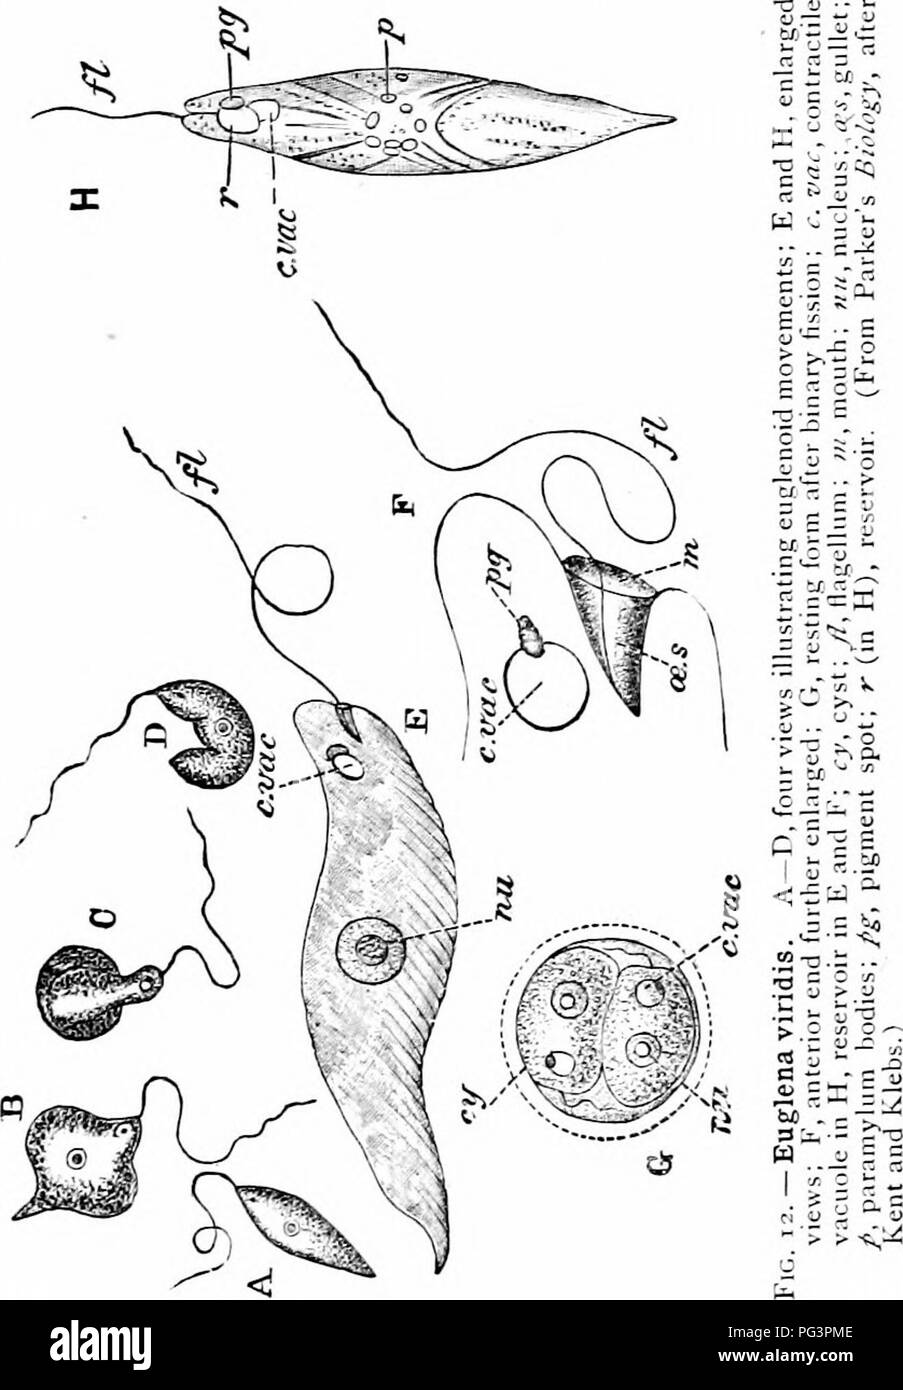 medium resolution of phylum protozoa 35 the body of euglena